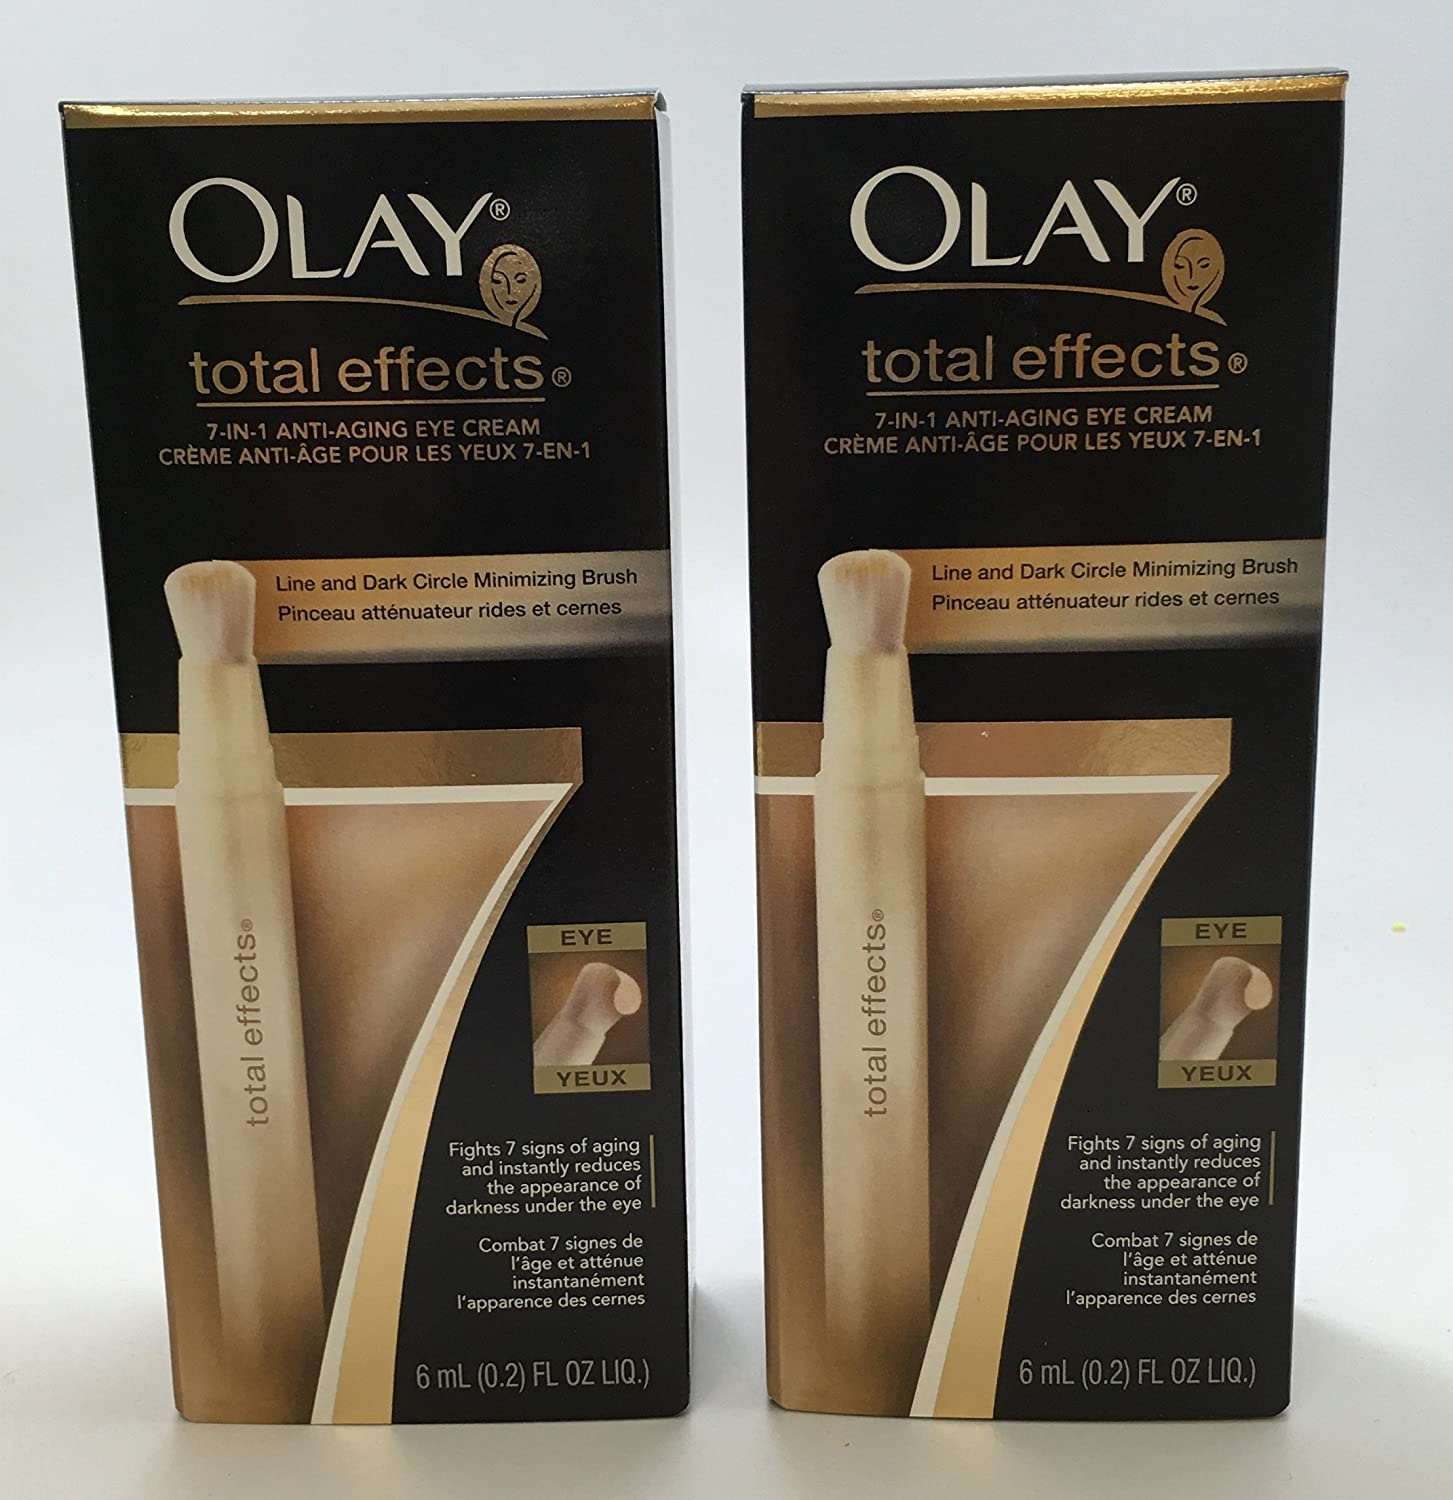 Olay Total Effects Dark Circle Minimizing Brush Today's only Oz Fl 0.2 Pack Price reduction